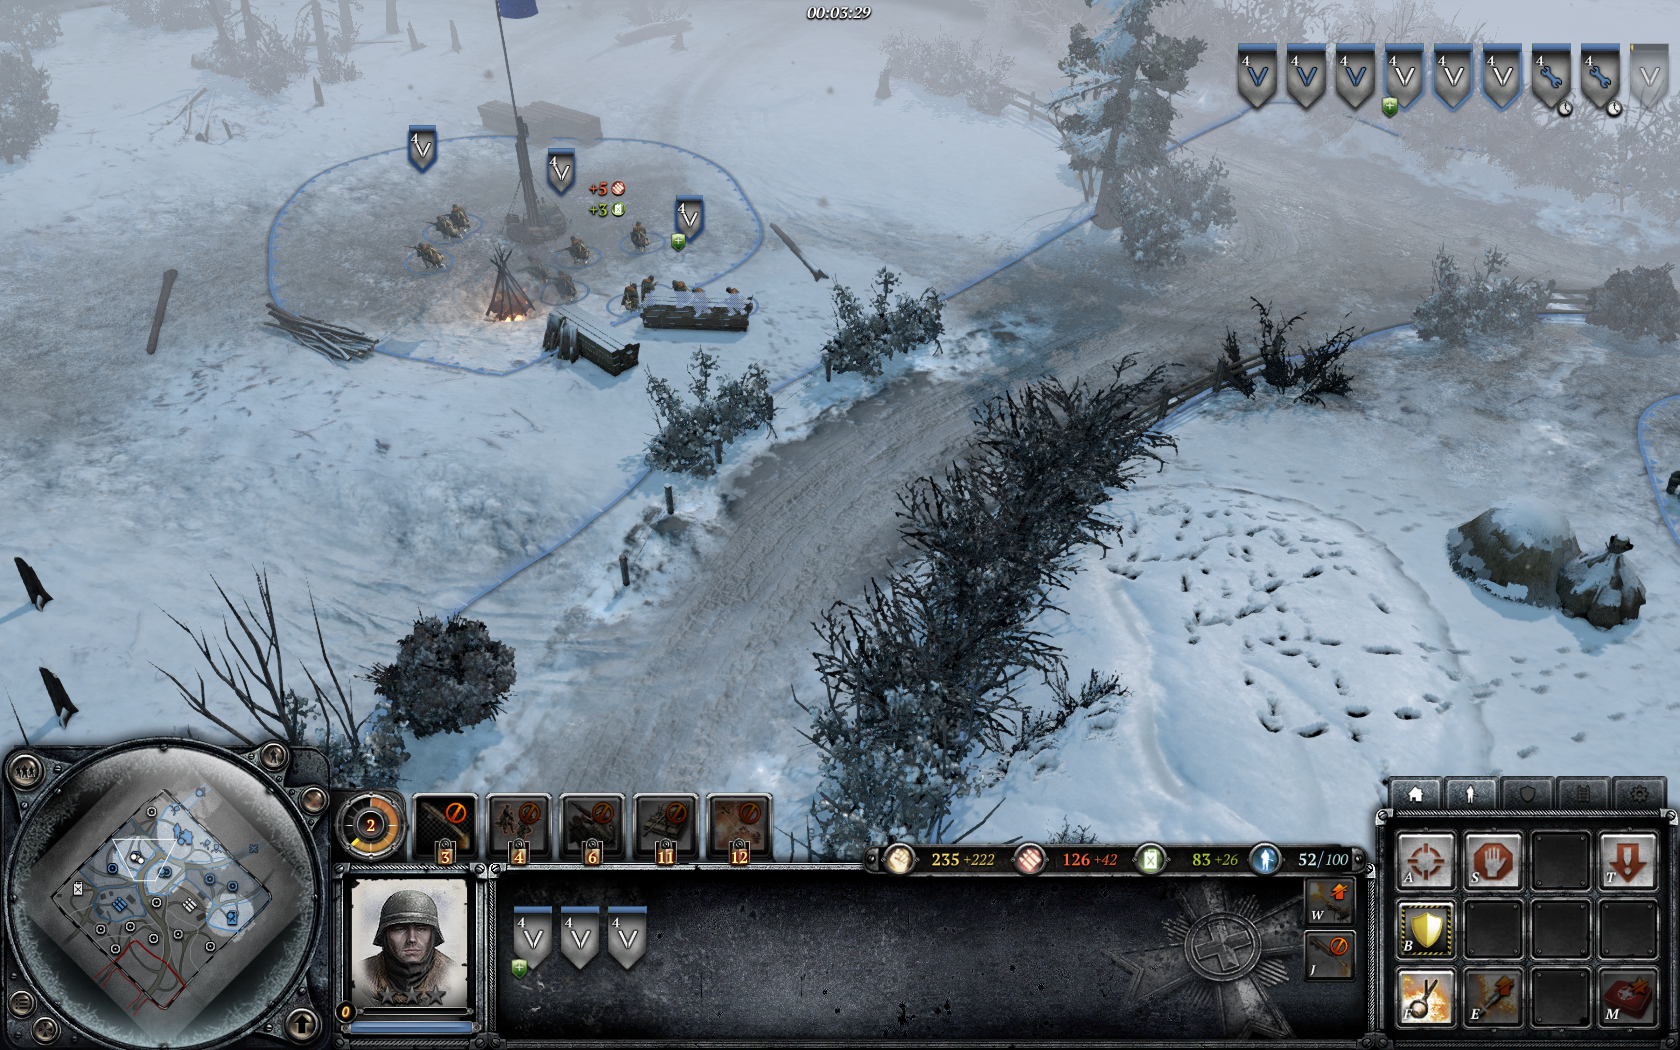 Coh 2 Case Blue : Company of heroes is a real snow job quarter to three